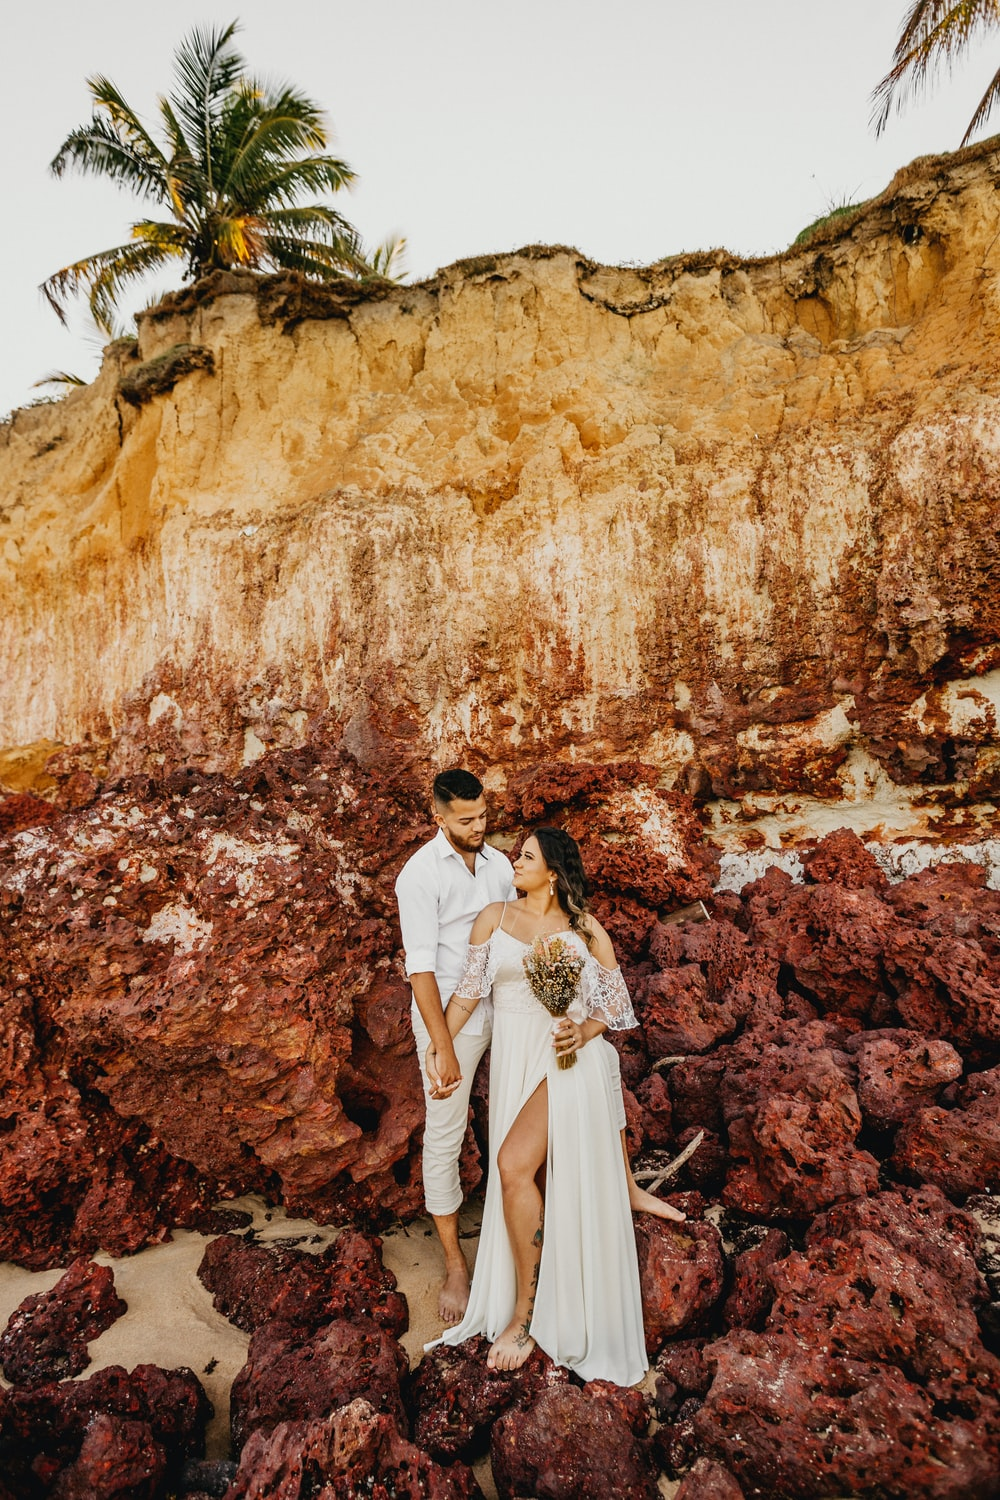 man and woman in white wedding dress standing in front of brown rock formation during daytime